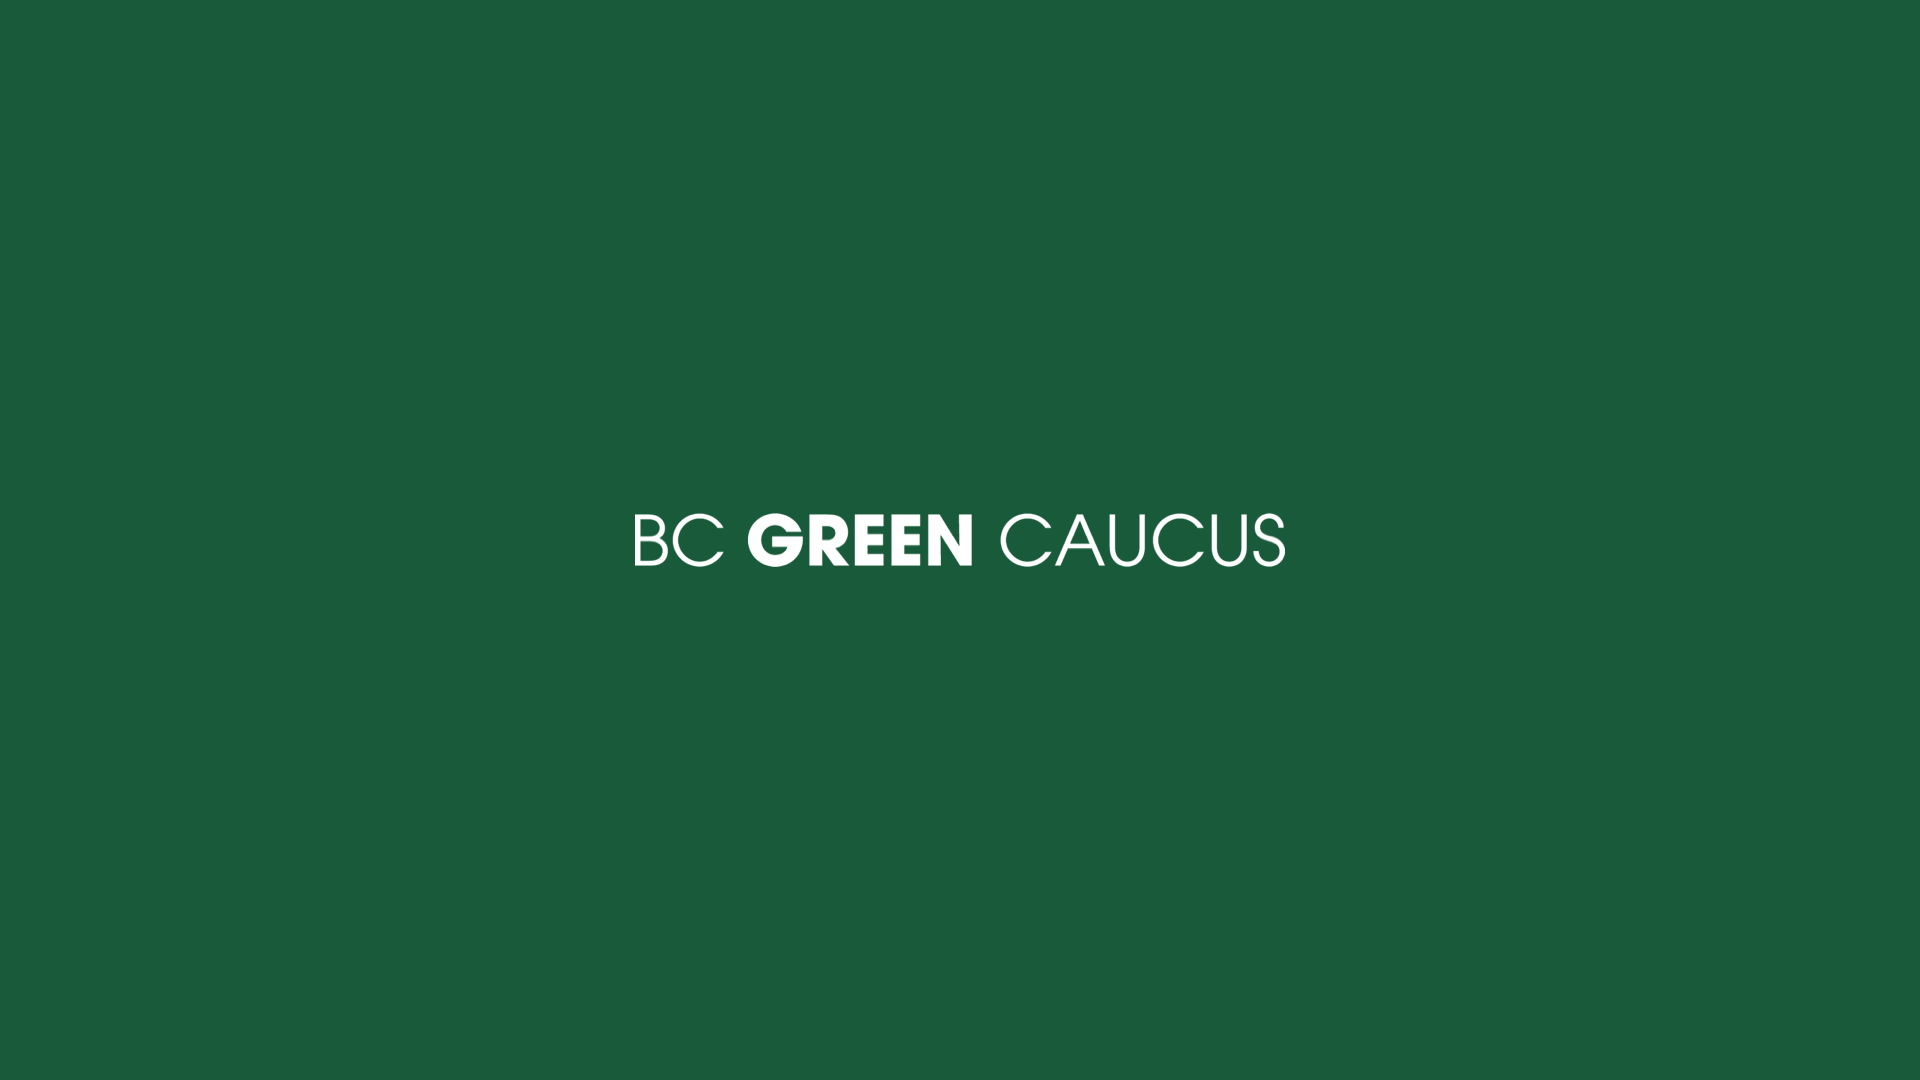 BC Green Caucus commentary on economic recovery